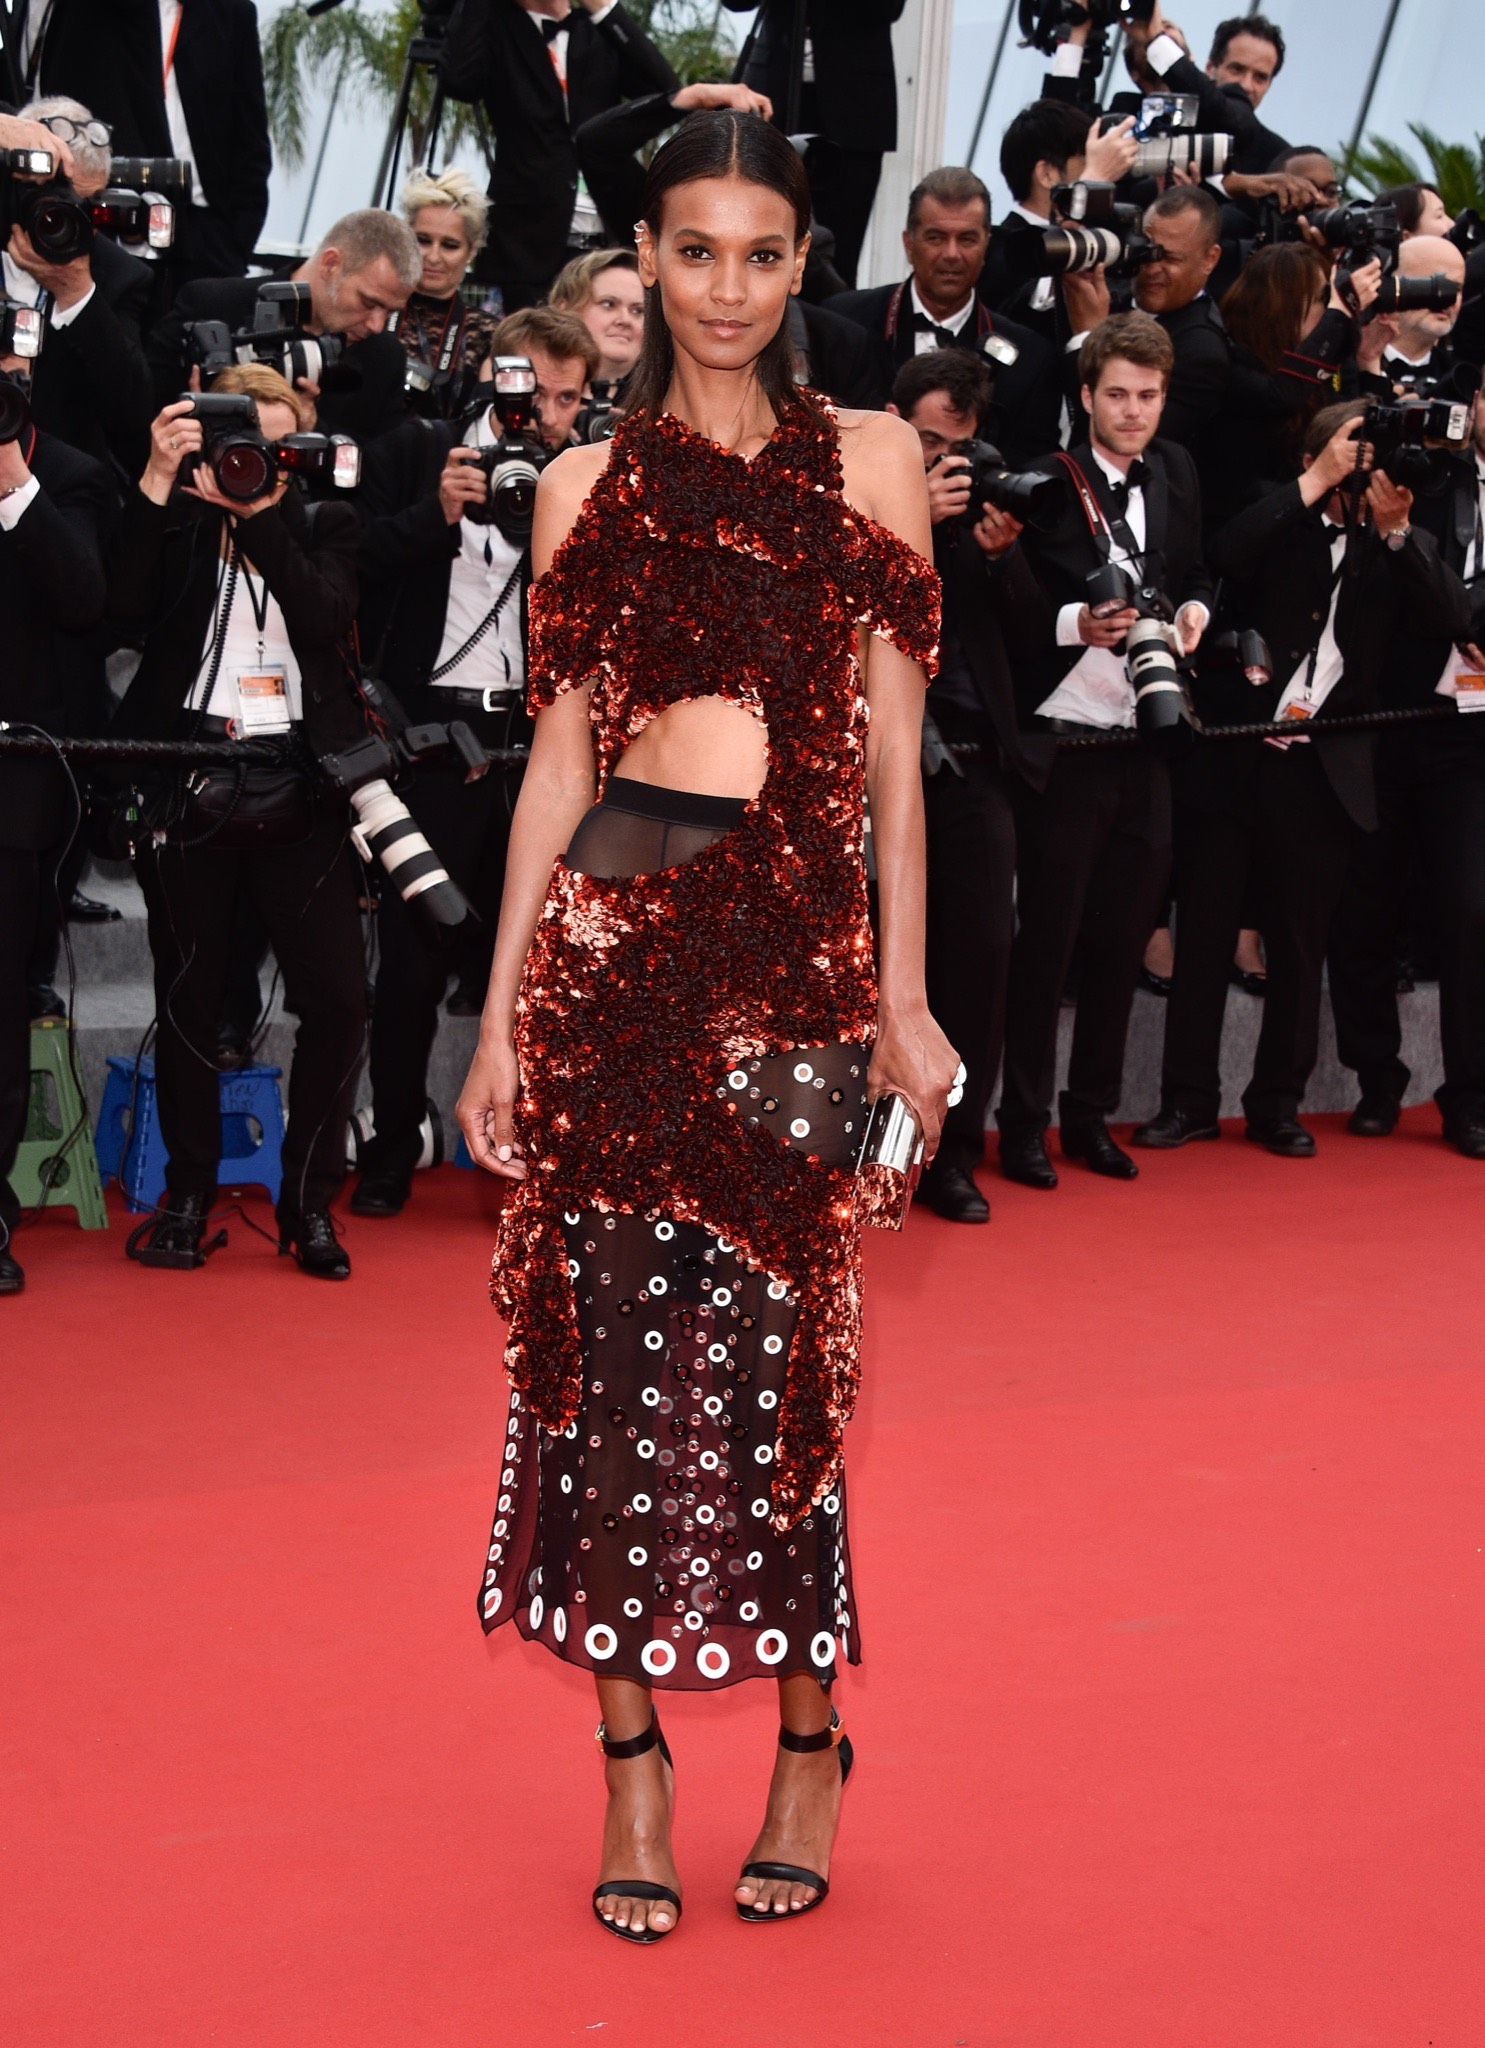 Liya Kebede wearing look 43 from Proenza Schouler a/w 2015 collection. Source: style.com